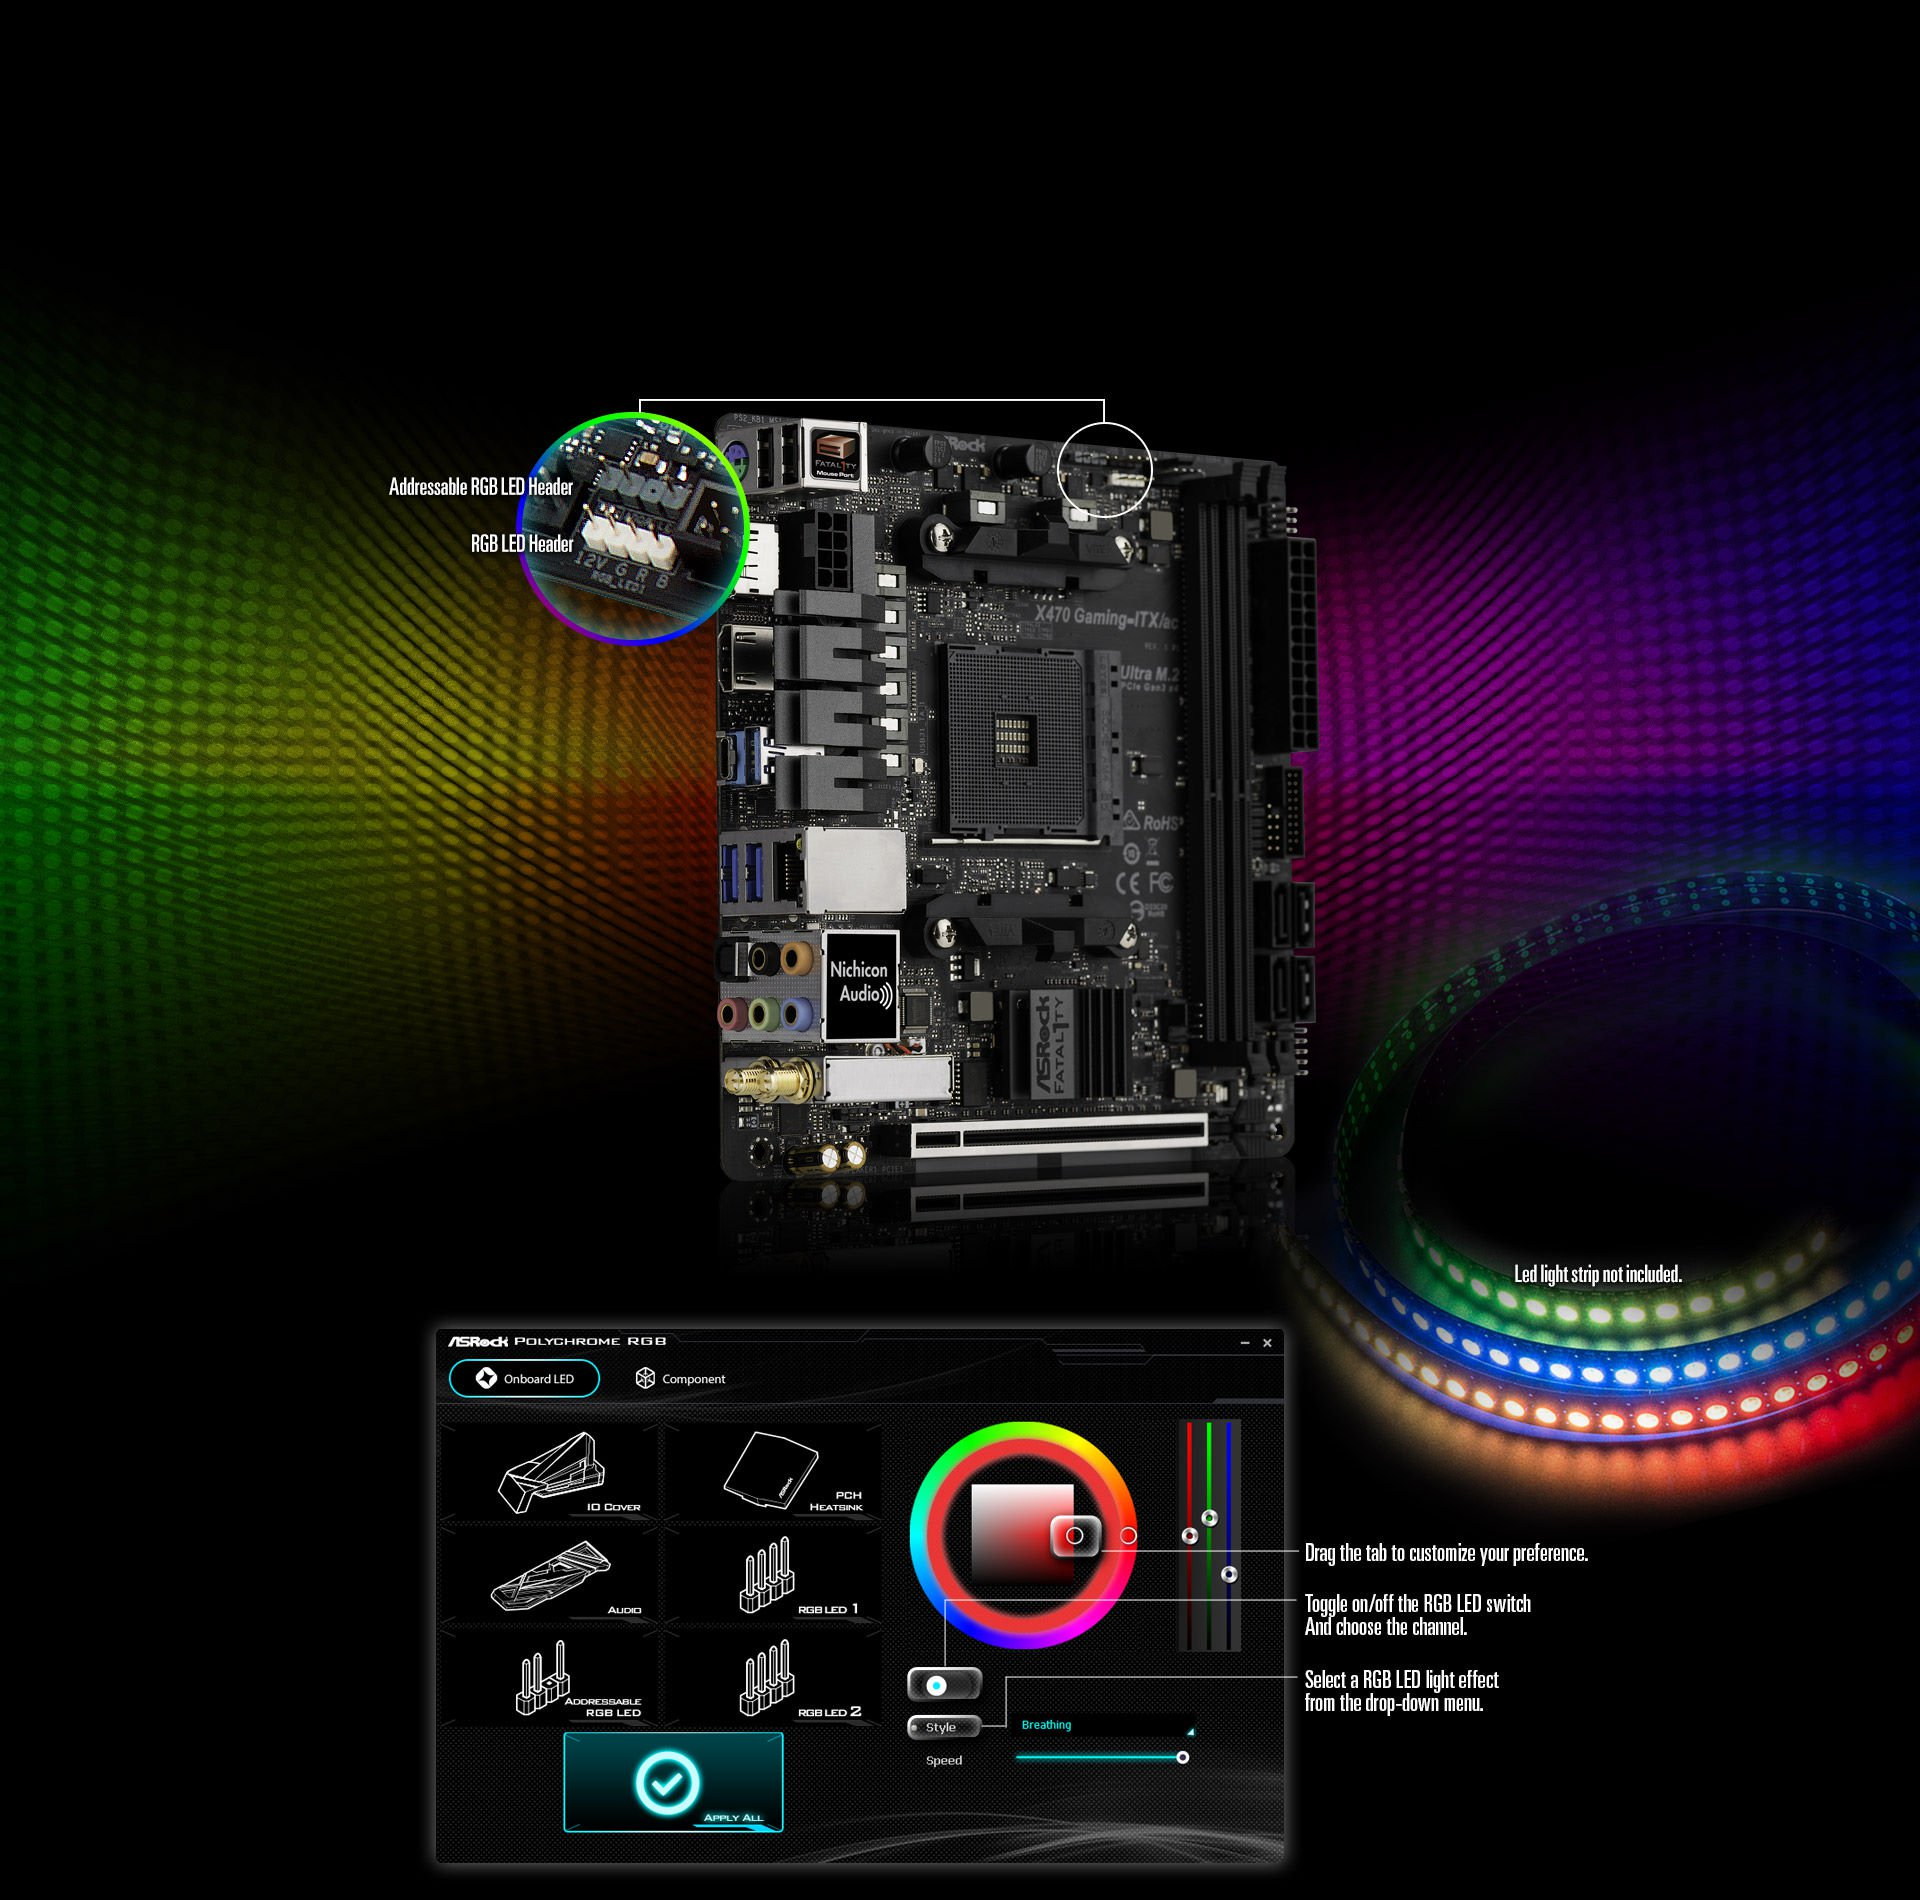 5050 led strip wiring diagram 12 volt ammeter asrock fatal1ty x470 gaming itx ac the rgb header supports standard 12v g r b with a maximum power rating of 3a and length within 2 meters